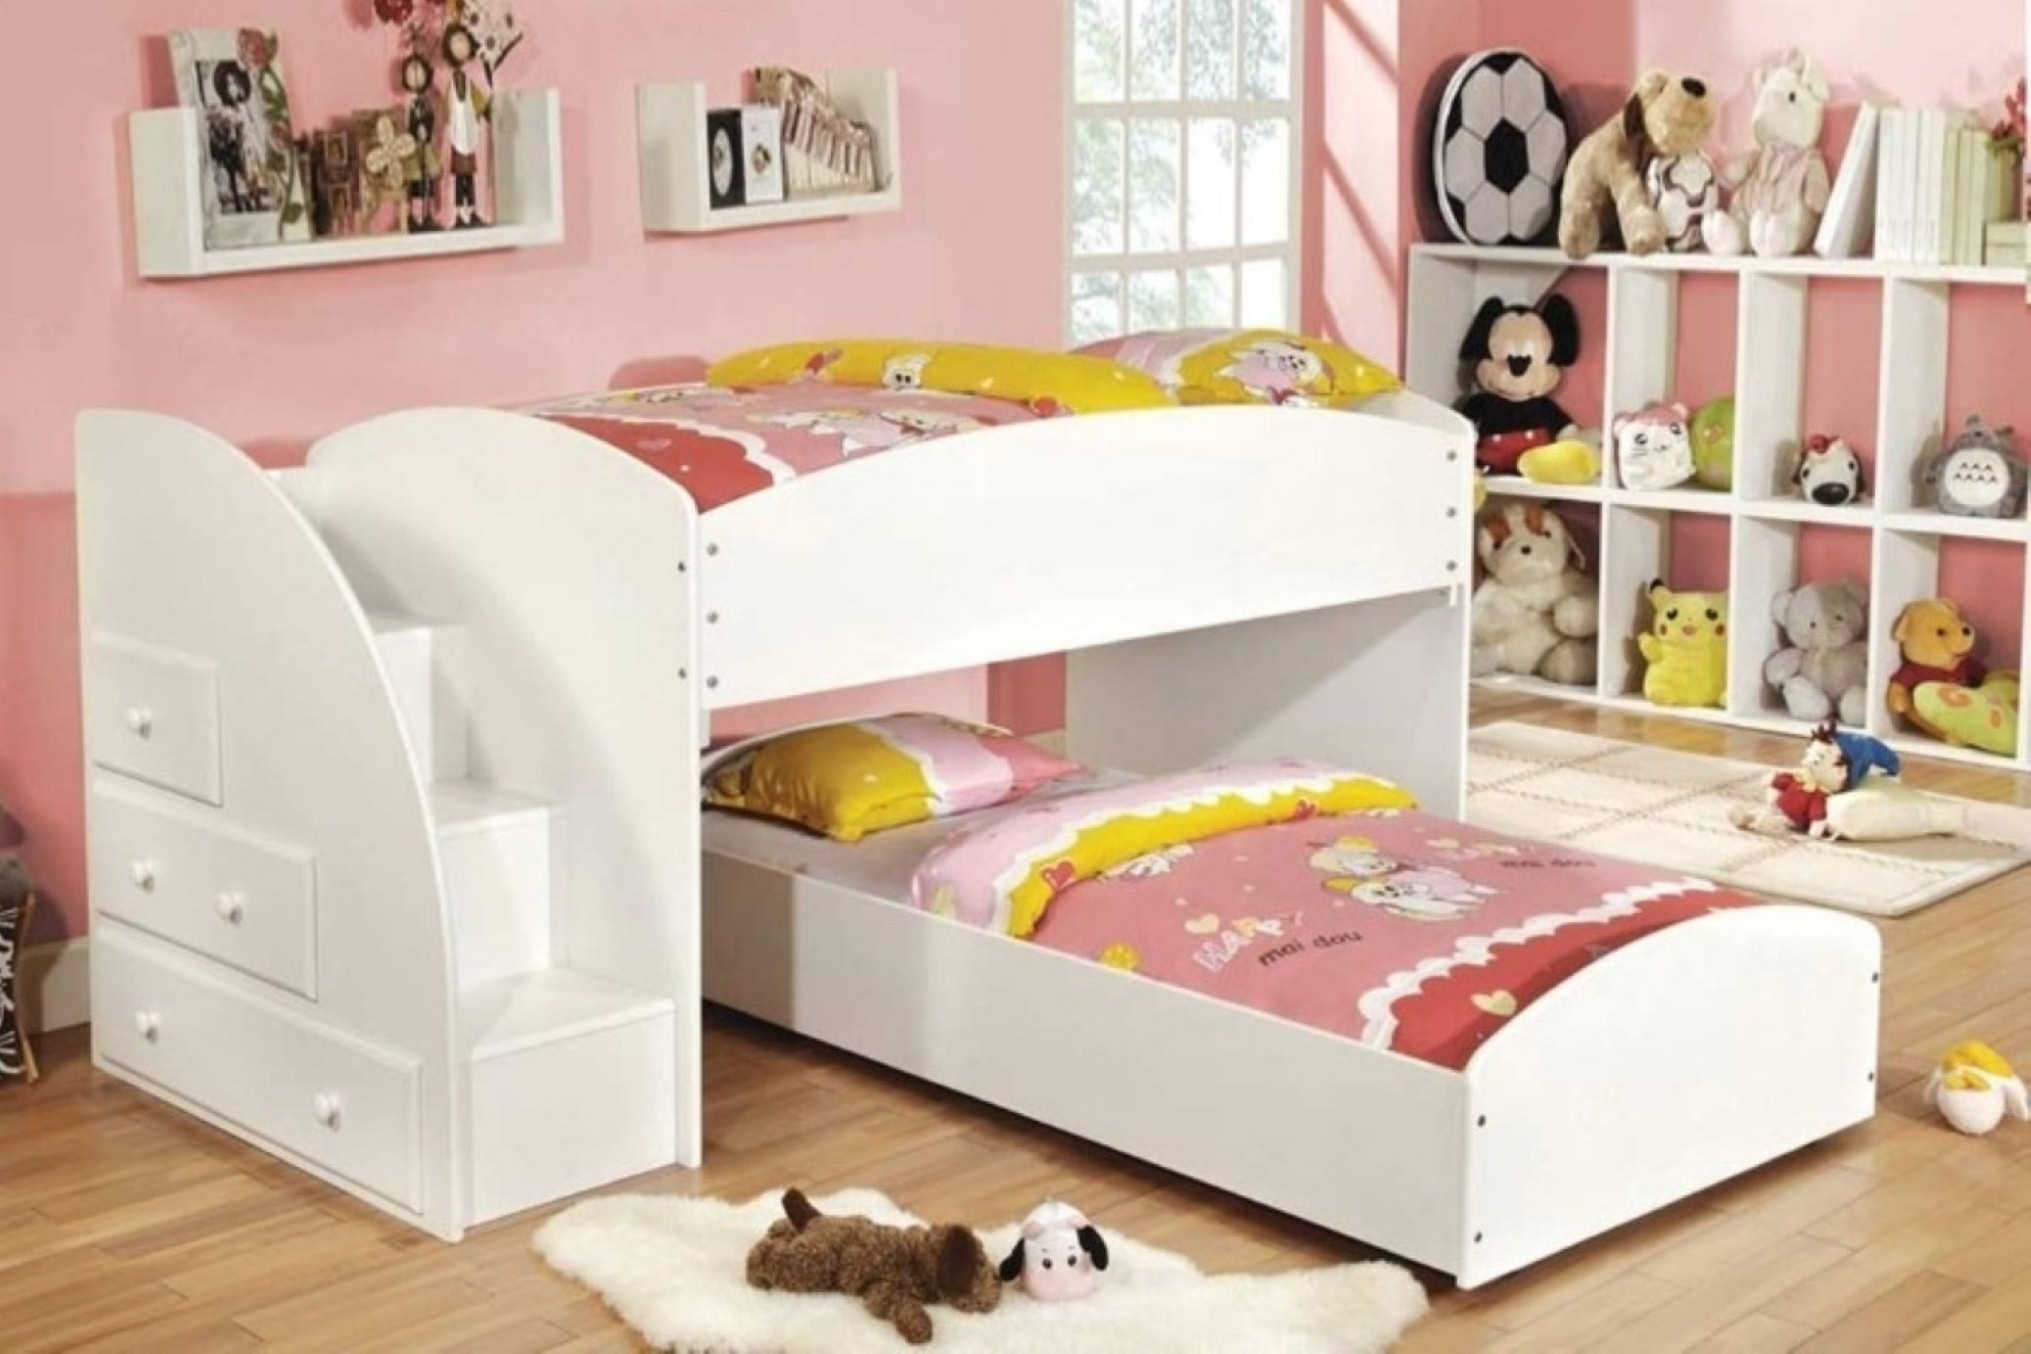 Luxury Interior Kids Girl Room Idea Focus On Stylish Bunk Bed With Stairs Design And Floating Bookshelf Plus Light Wood Floor (Image 82 of 123)